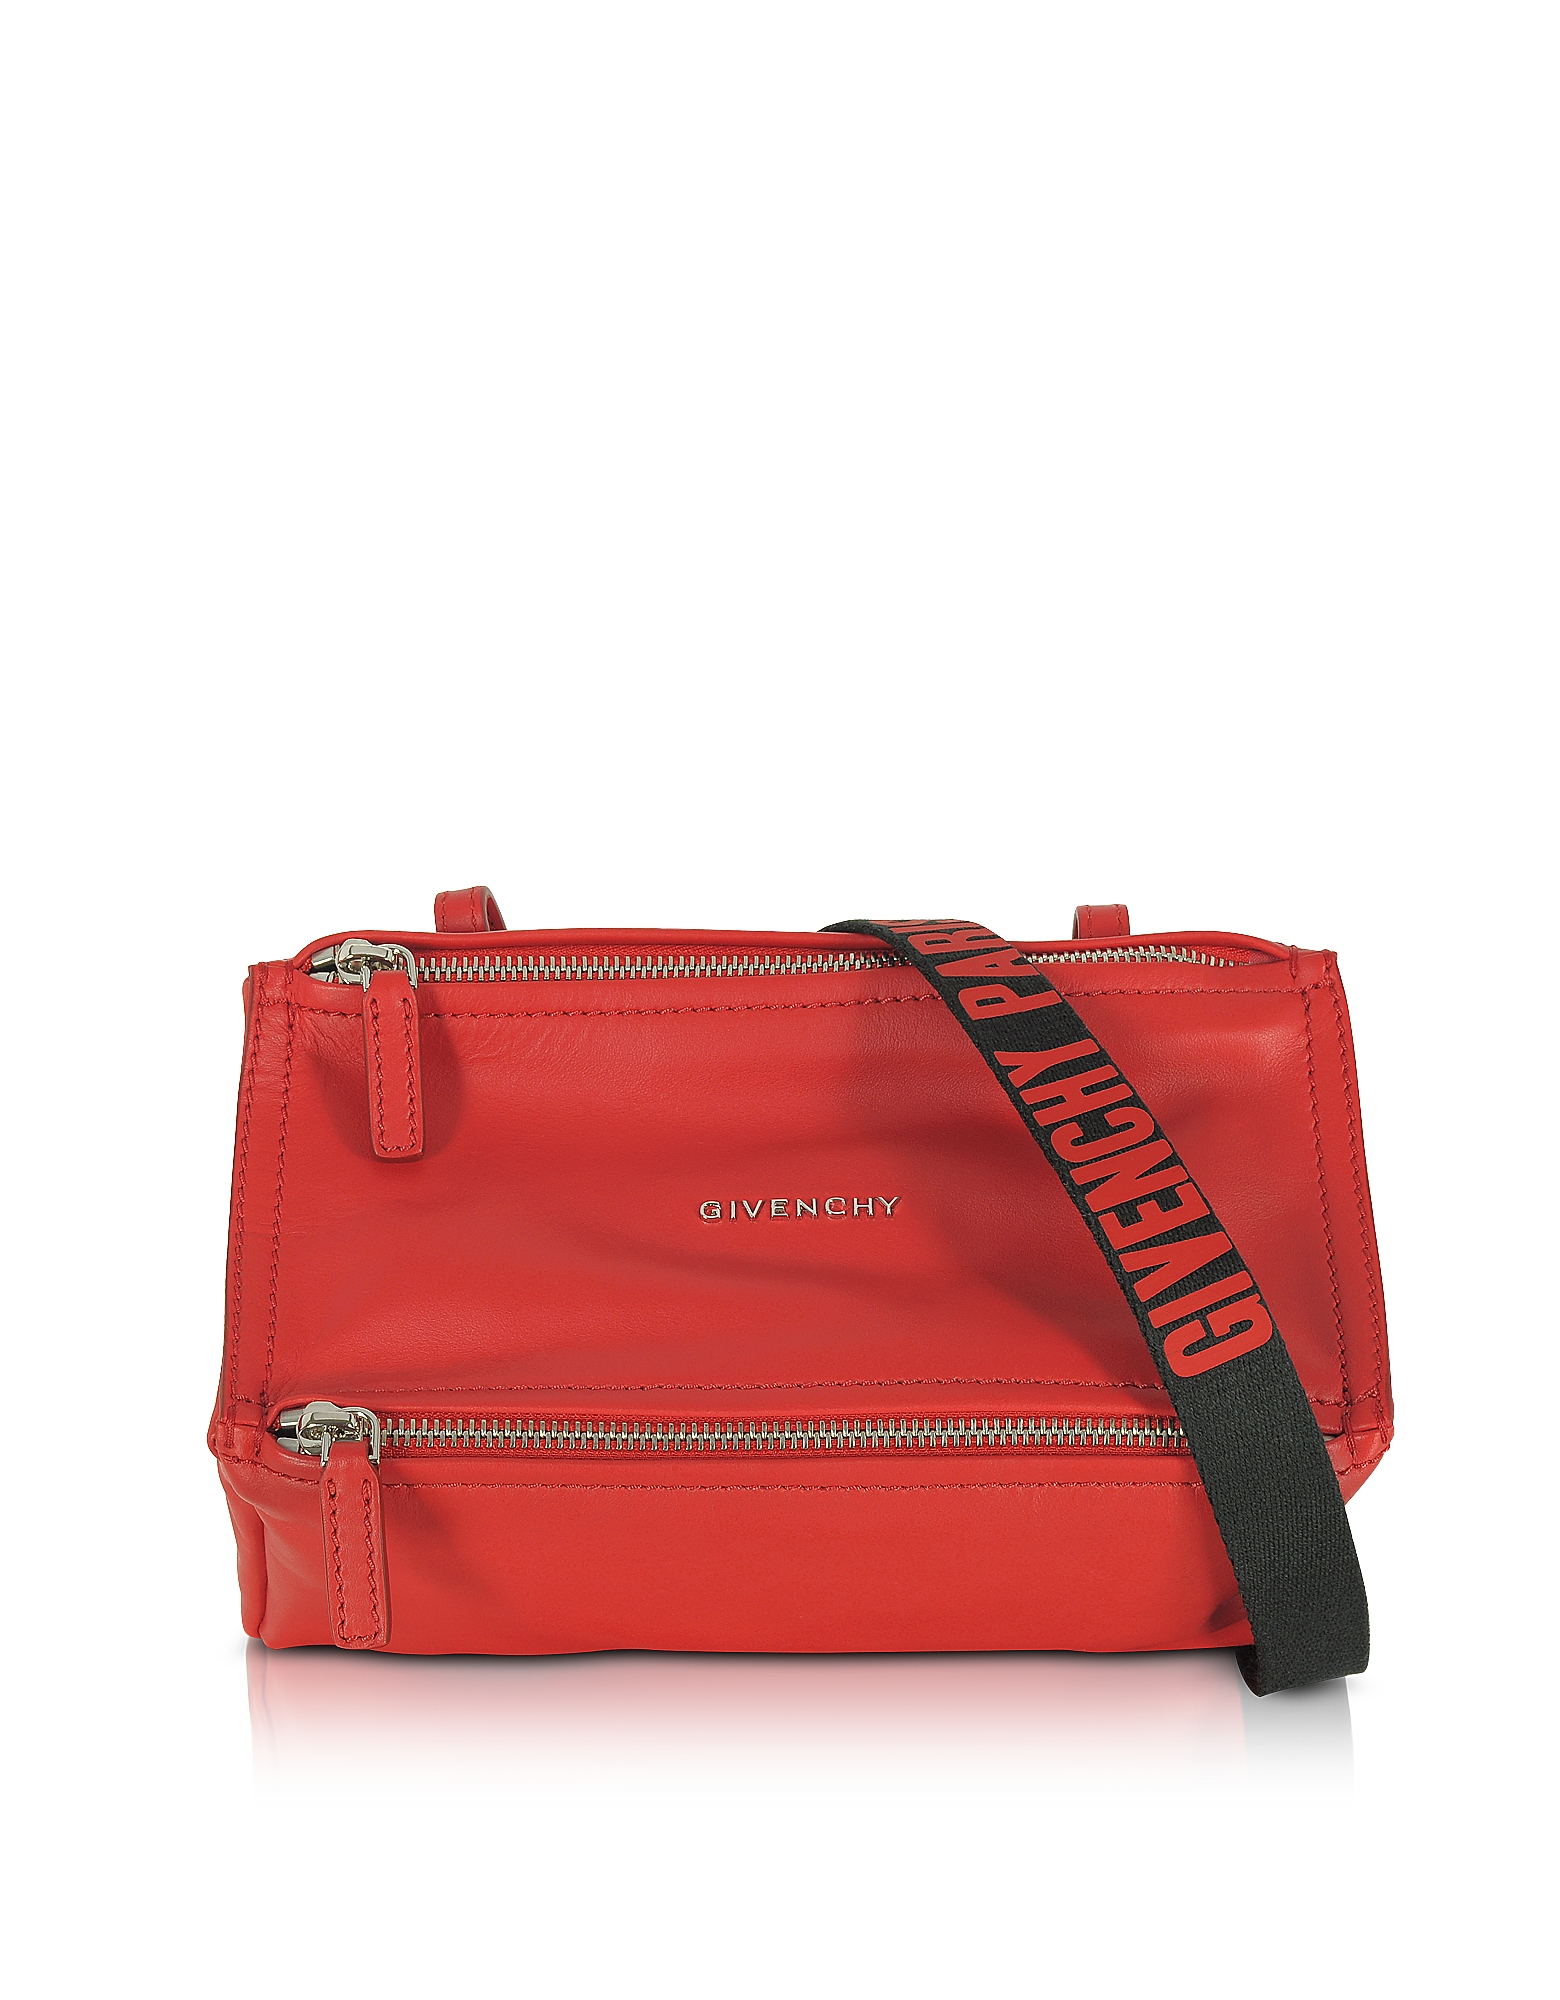 Givenchy Handbags, Pandora Mini Red Leather Crossbody Bag